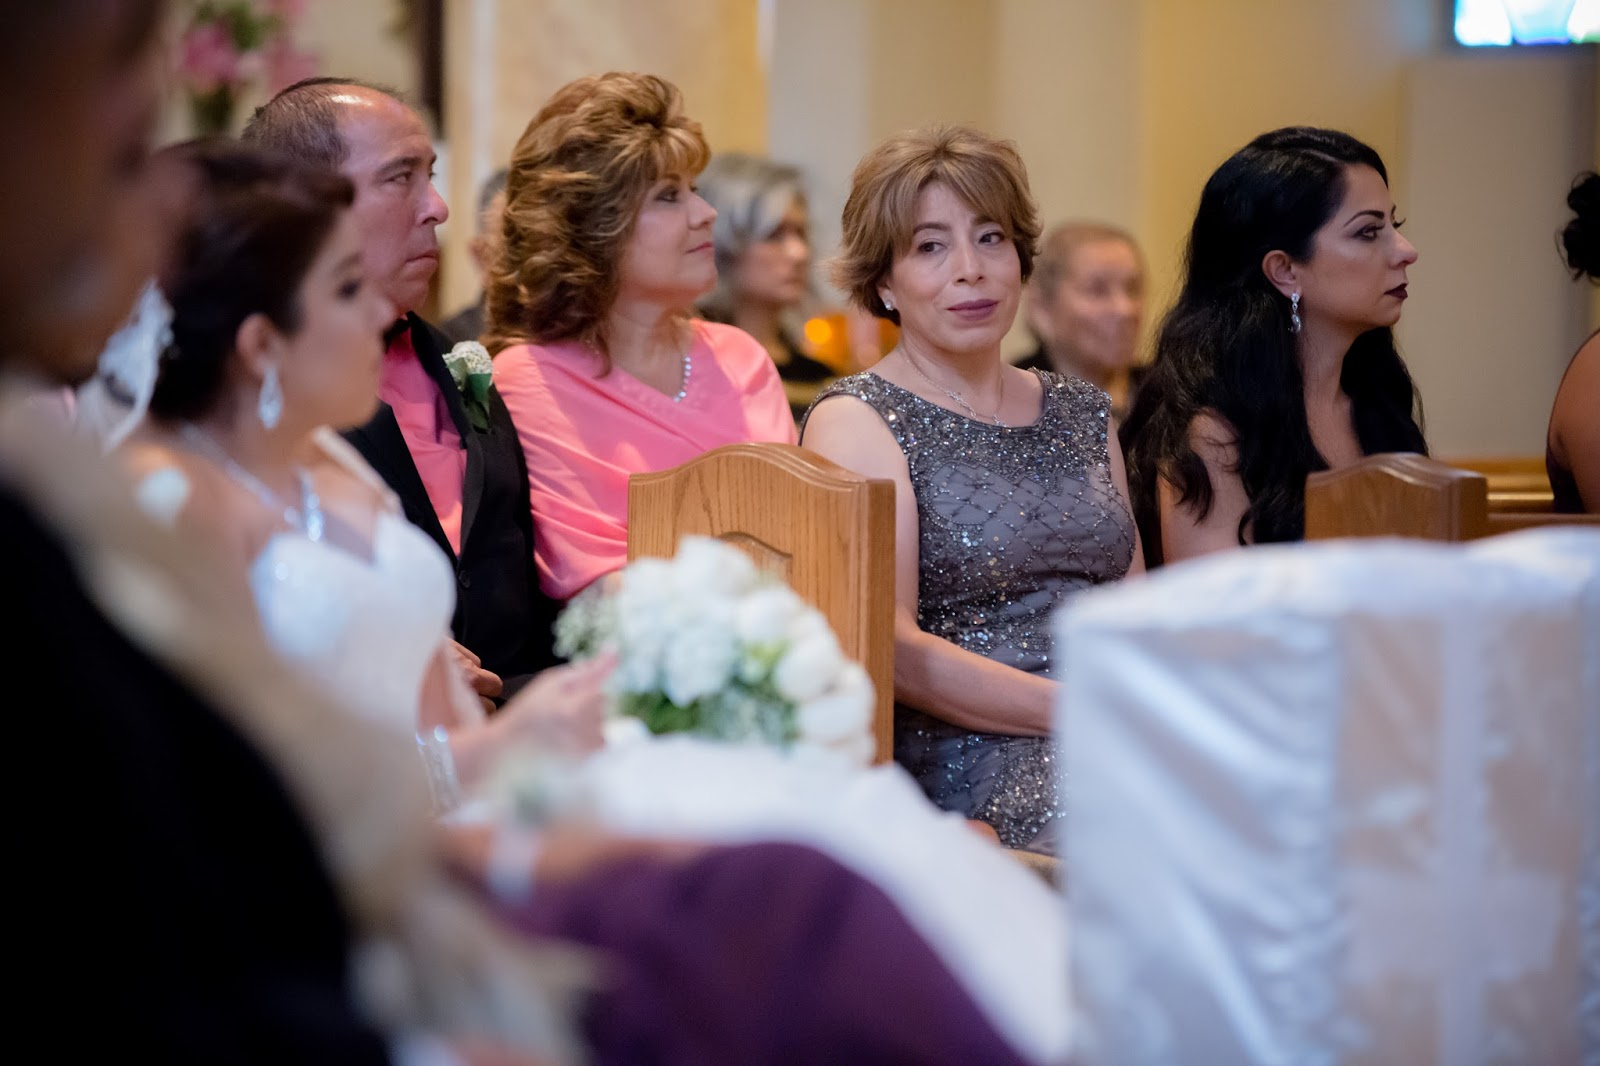 Mother of Bride looks at Bride with Love and Pride